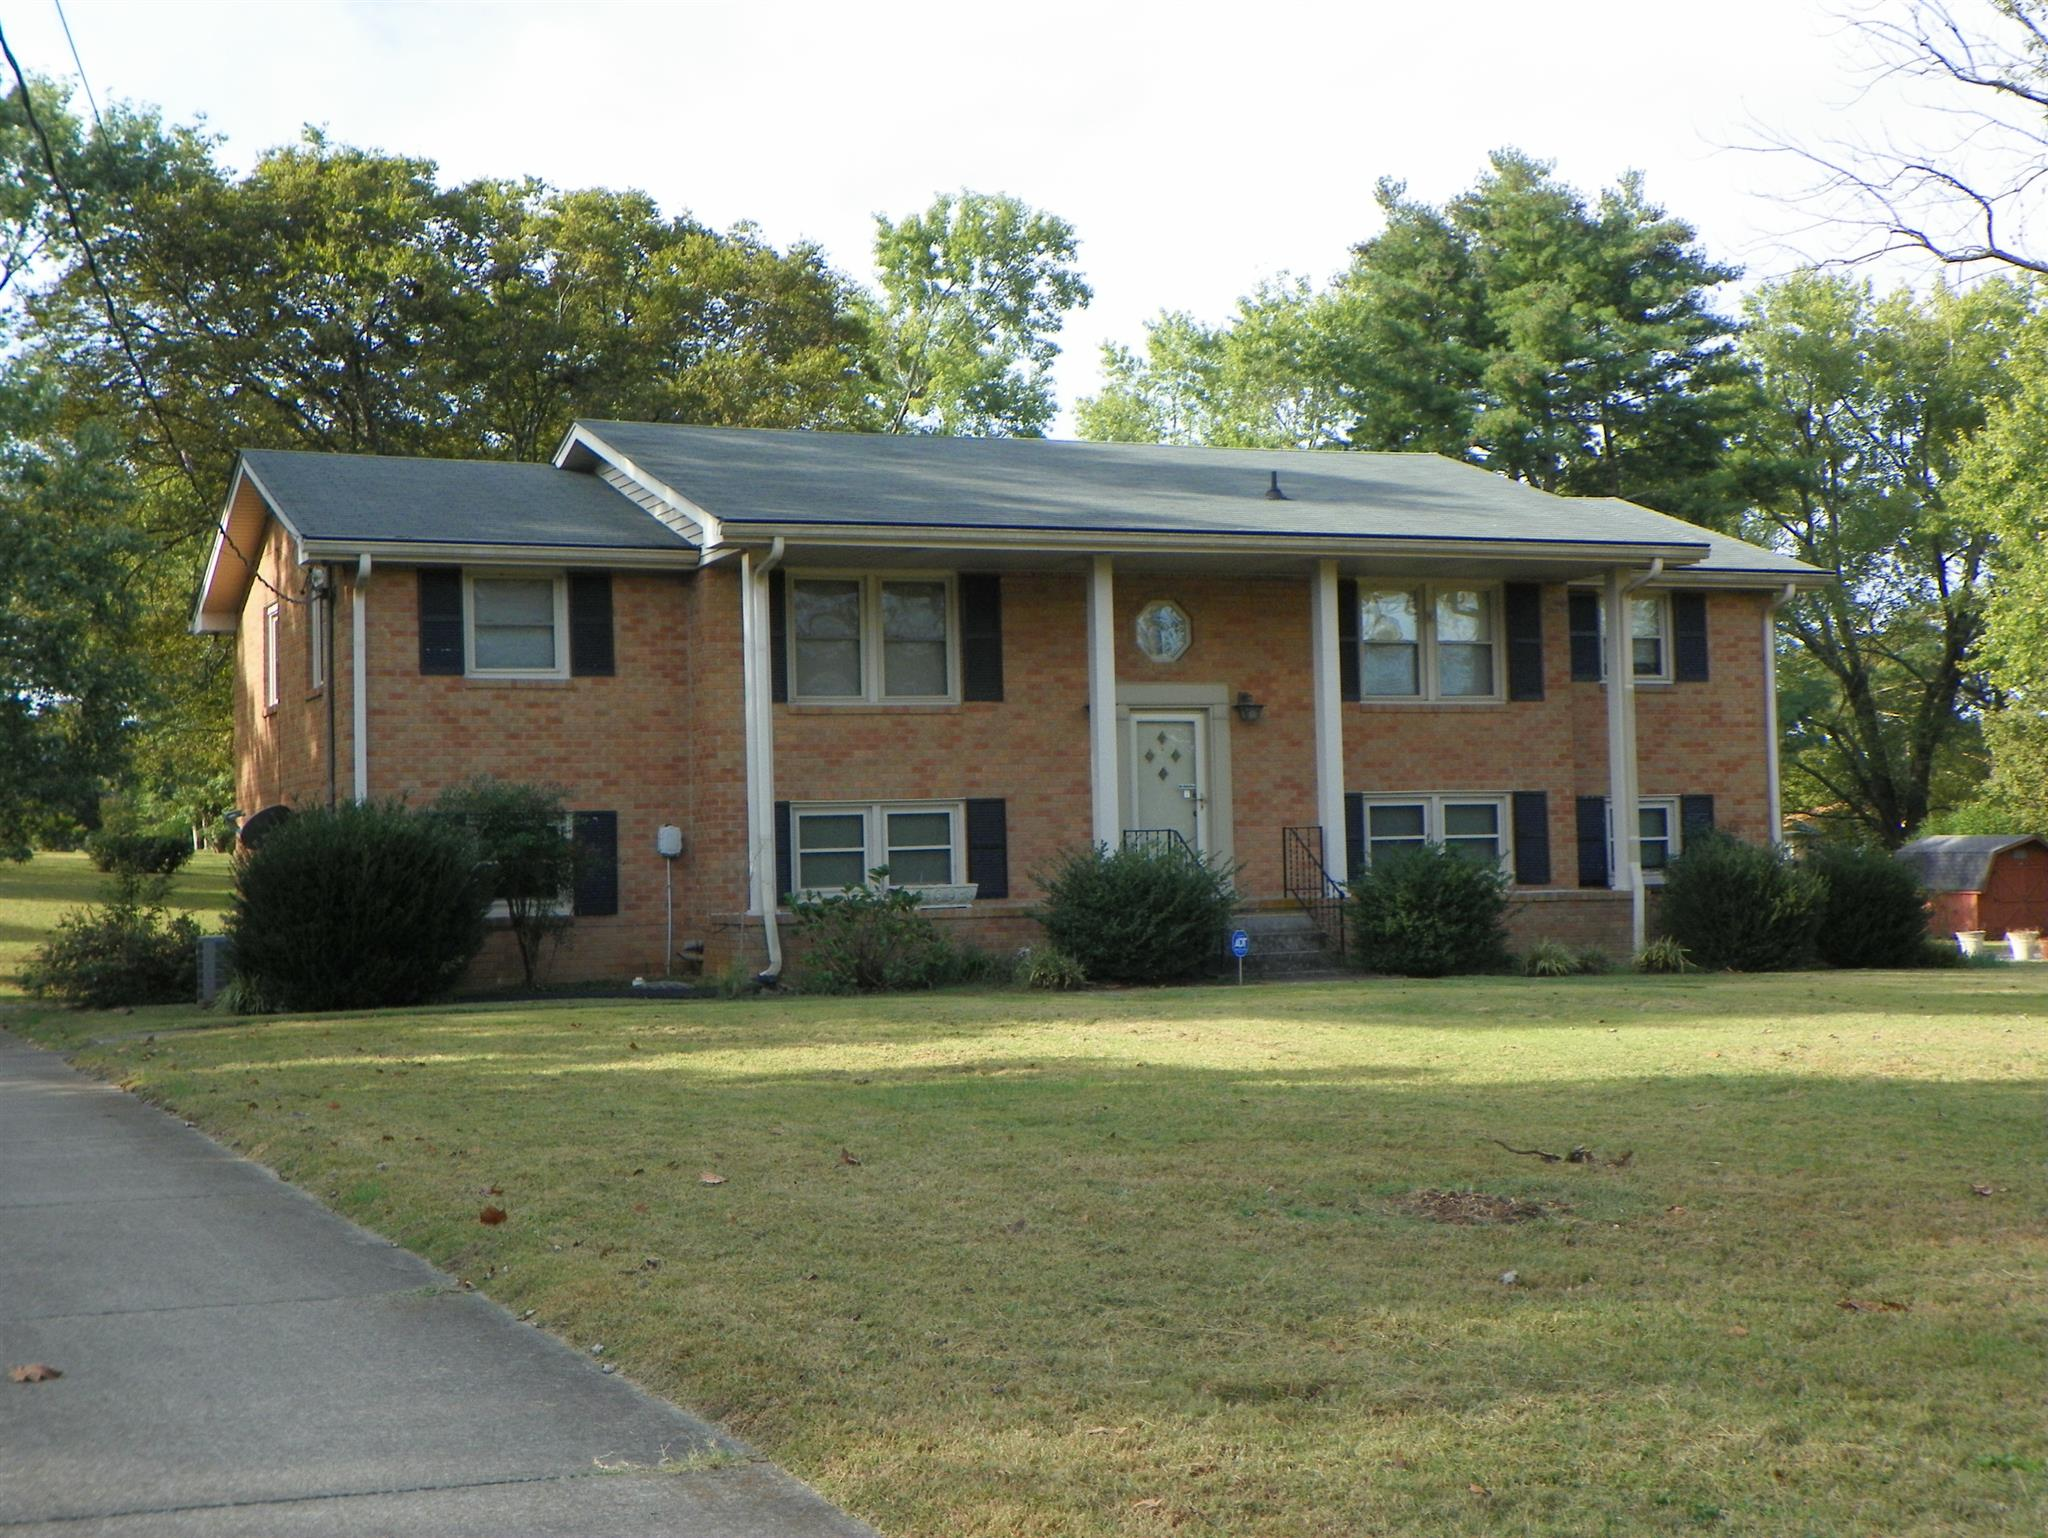 218 Rising Sun Ln, Old Hickory, TN 37138 - Old Hickory, TN real estate listing